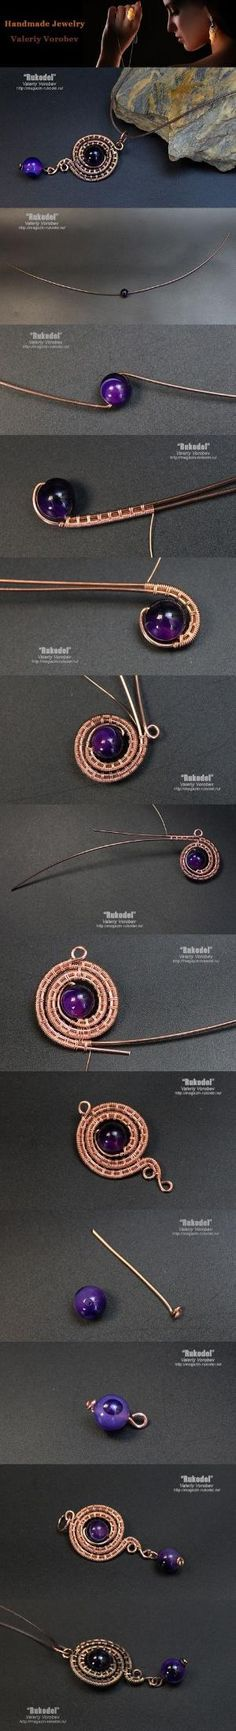 Pendant made of copper wire. Wire Wrap tutorial. by constance